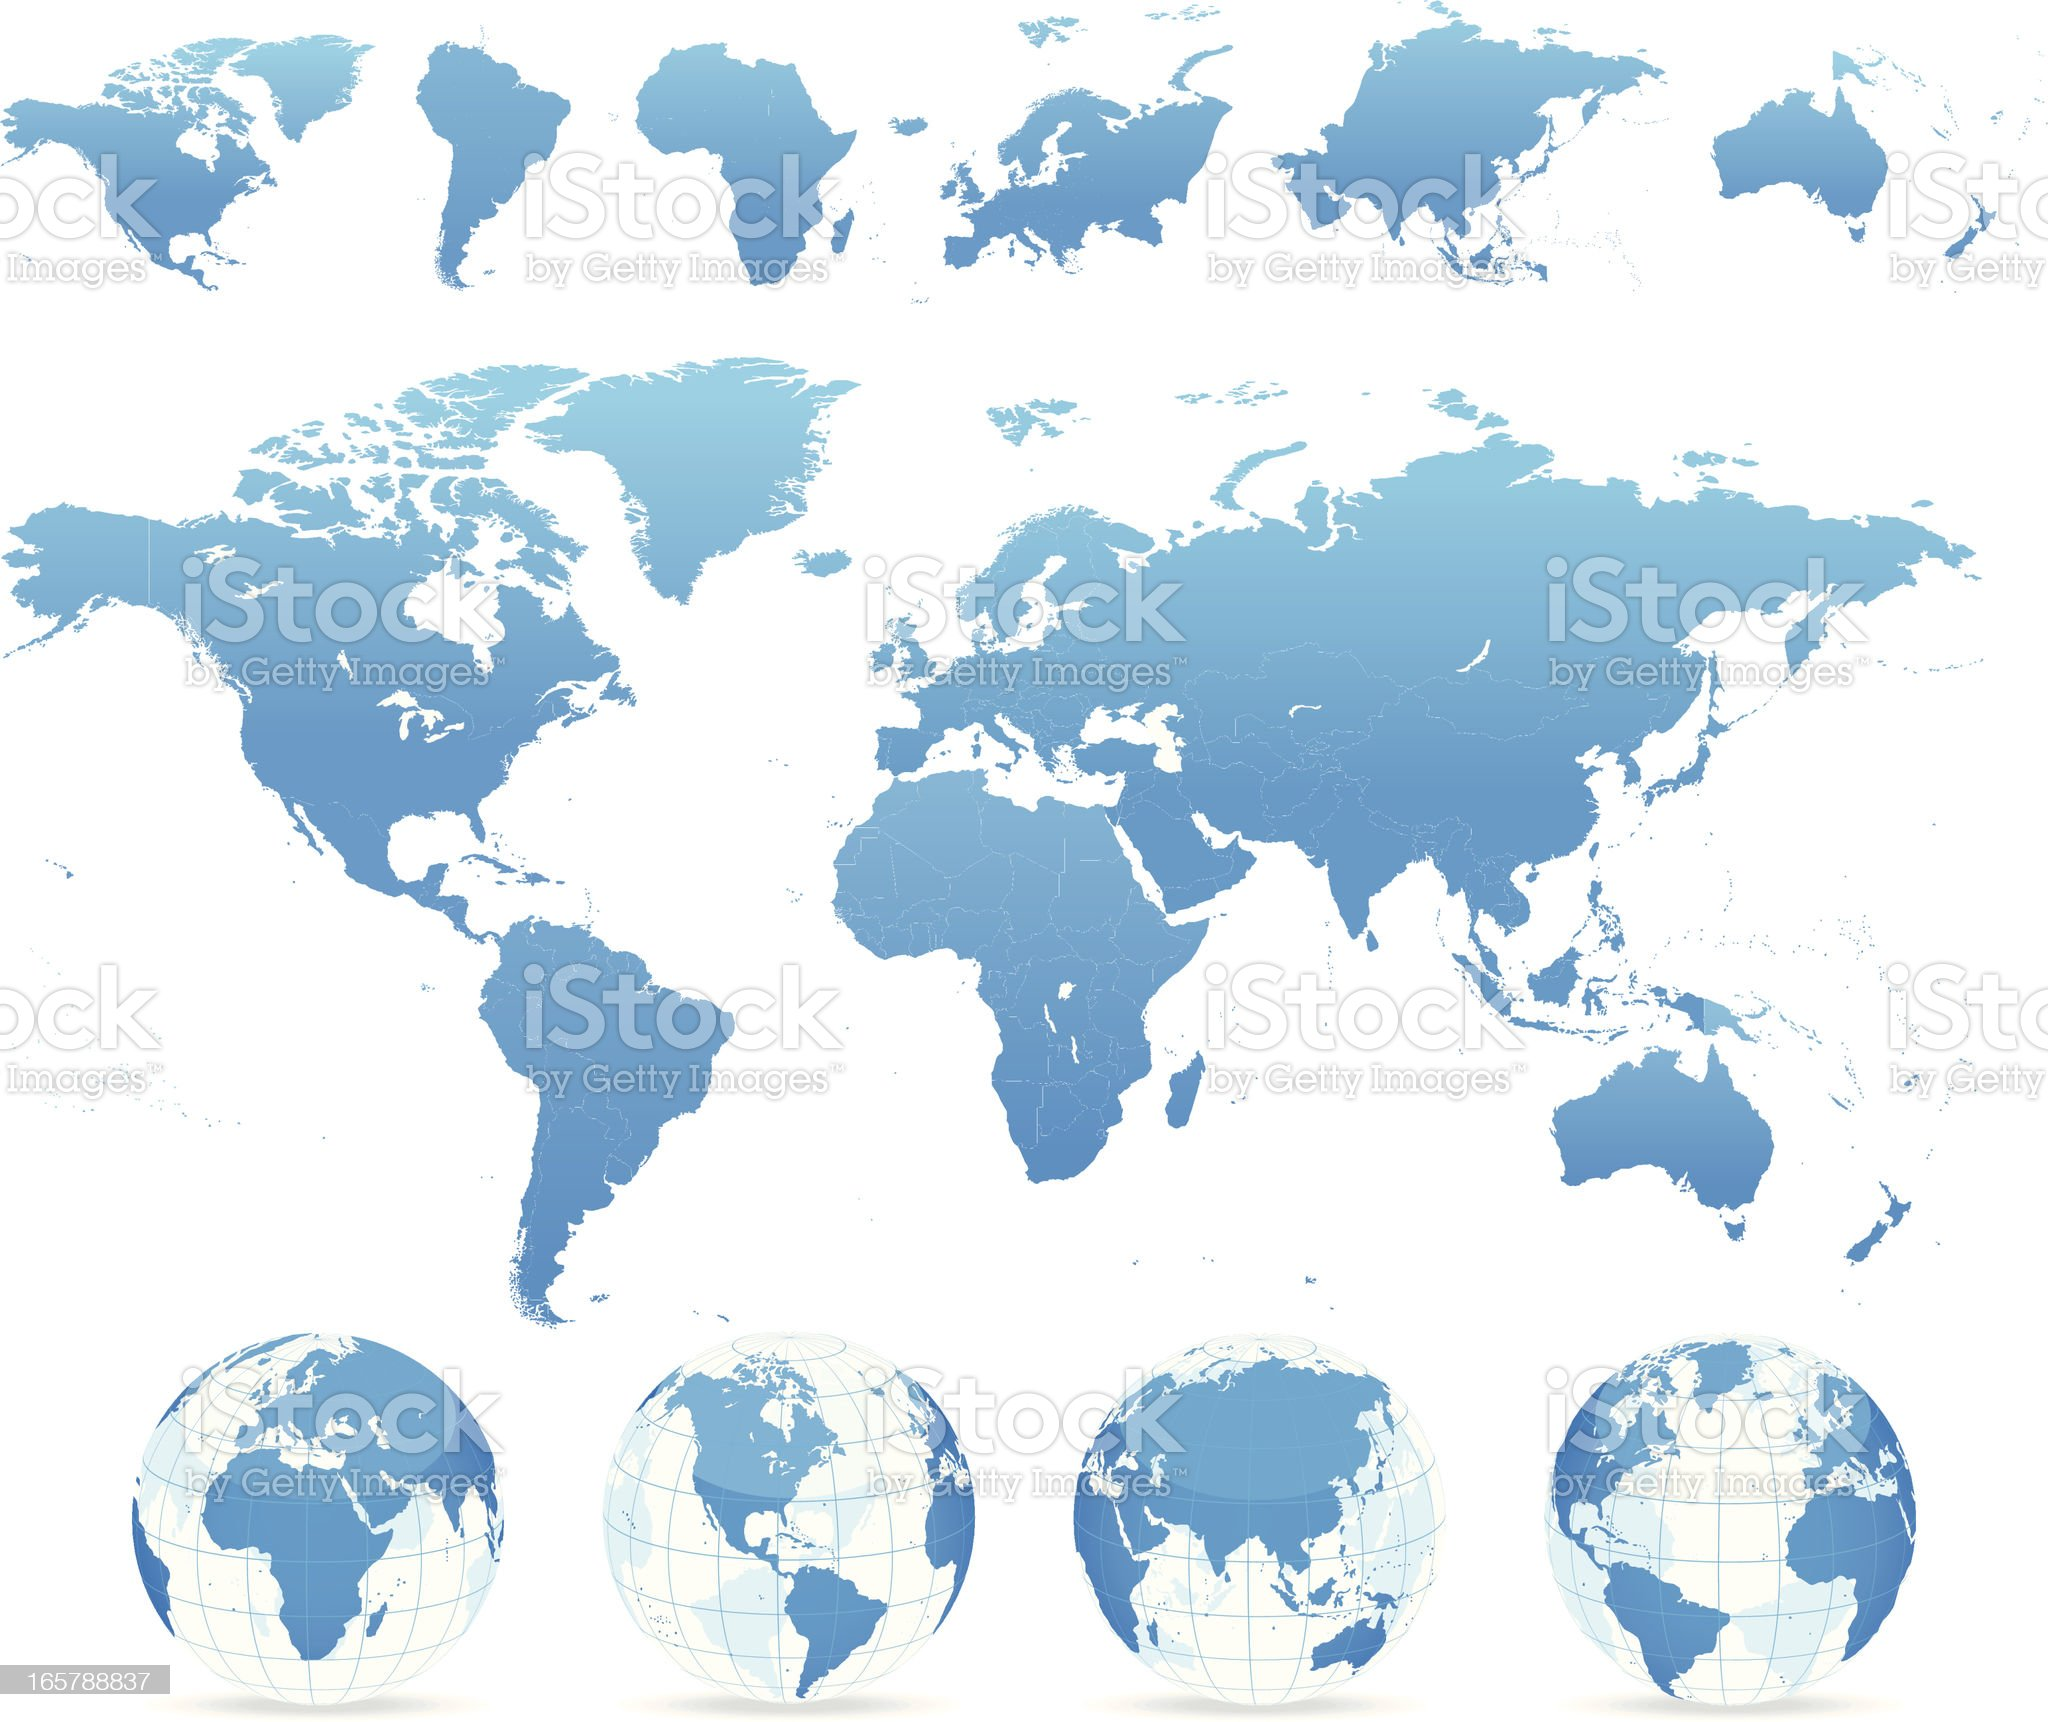 World map blue - countries, continents, globes royalty-free stock vector art